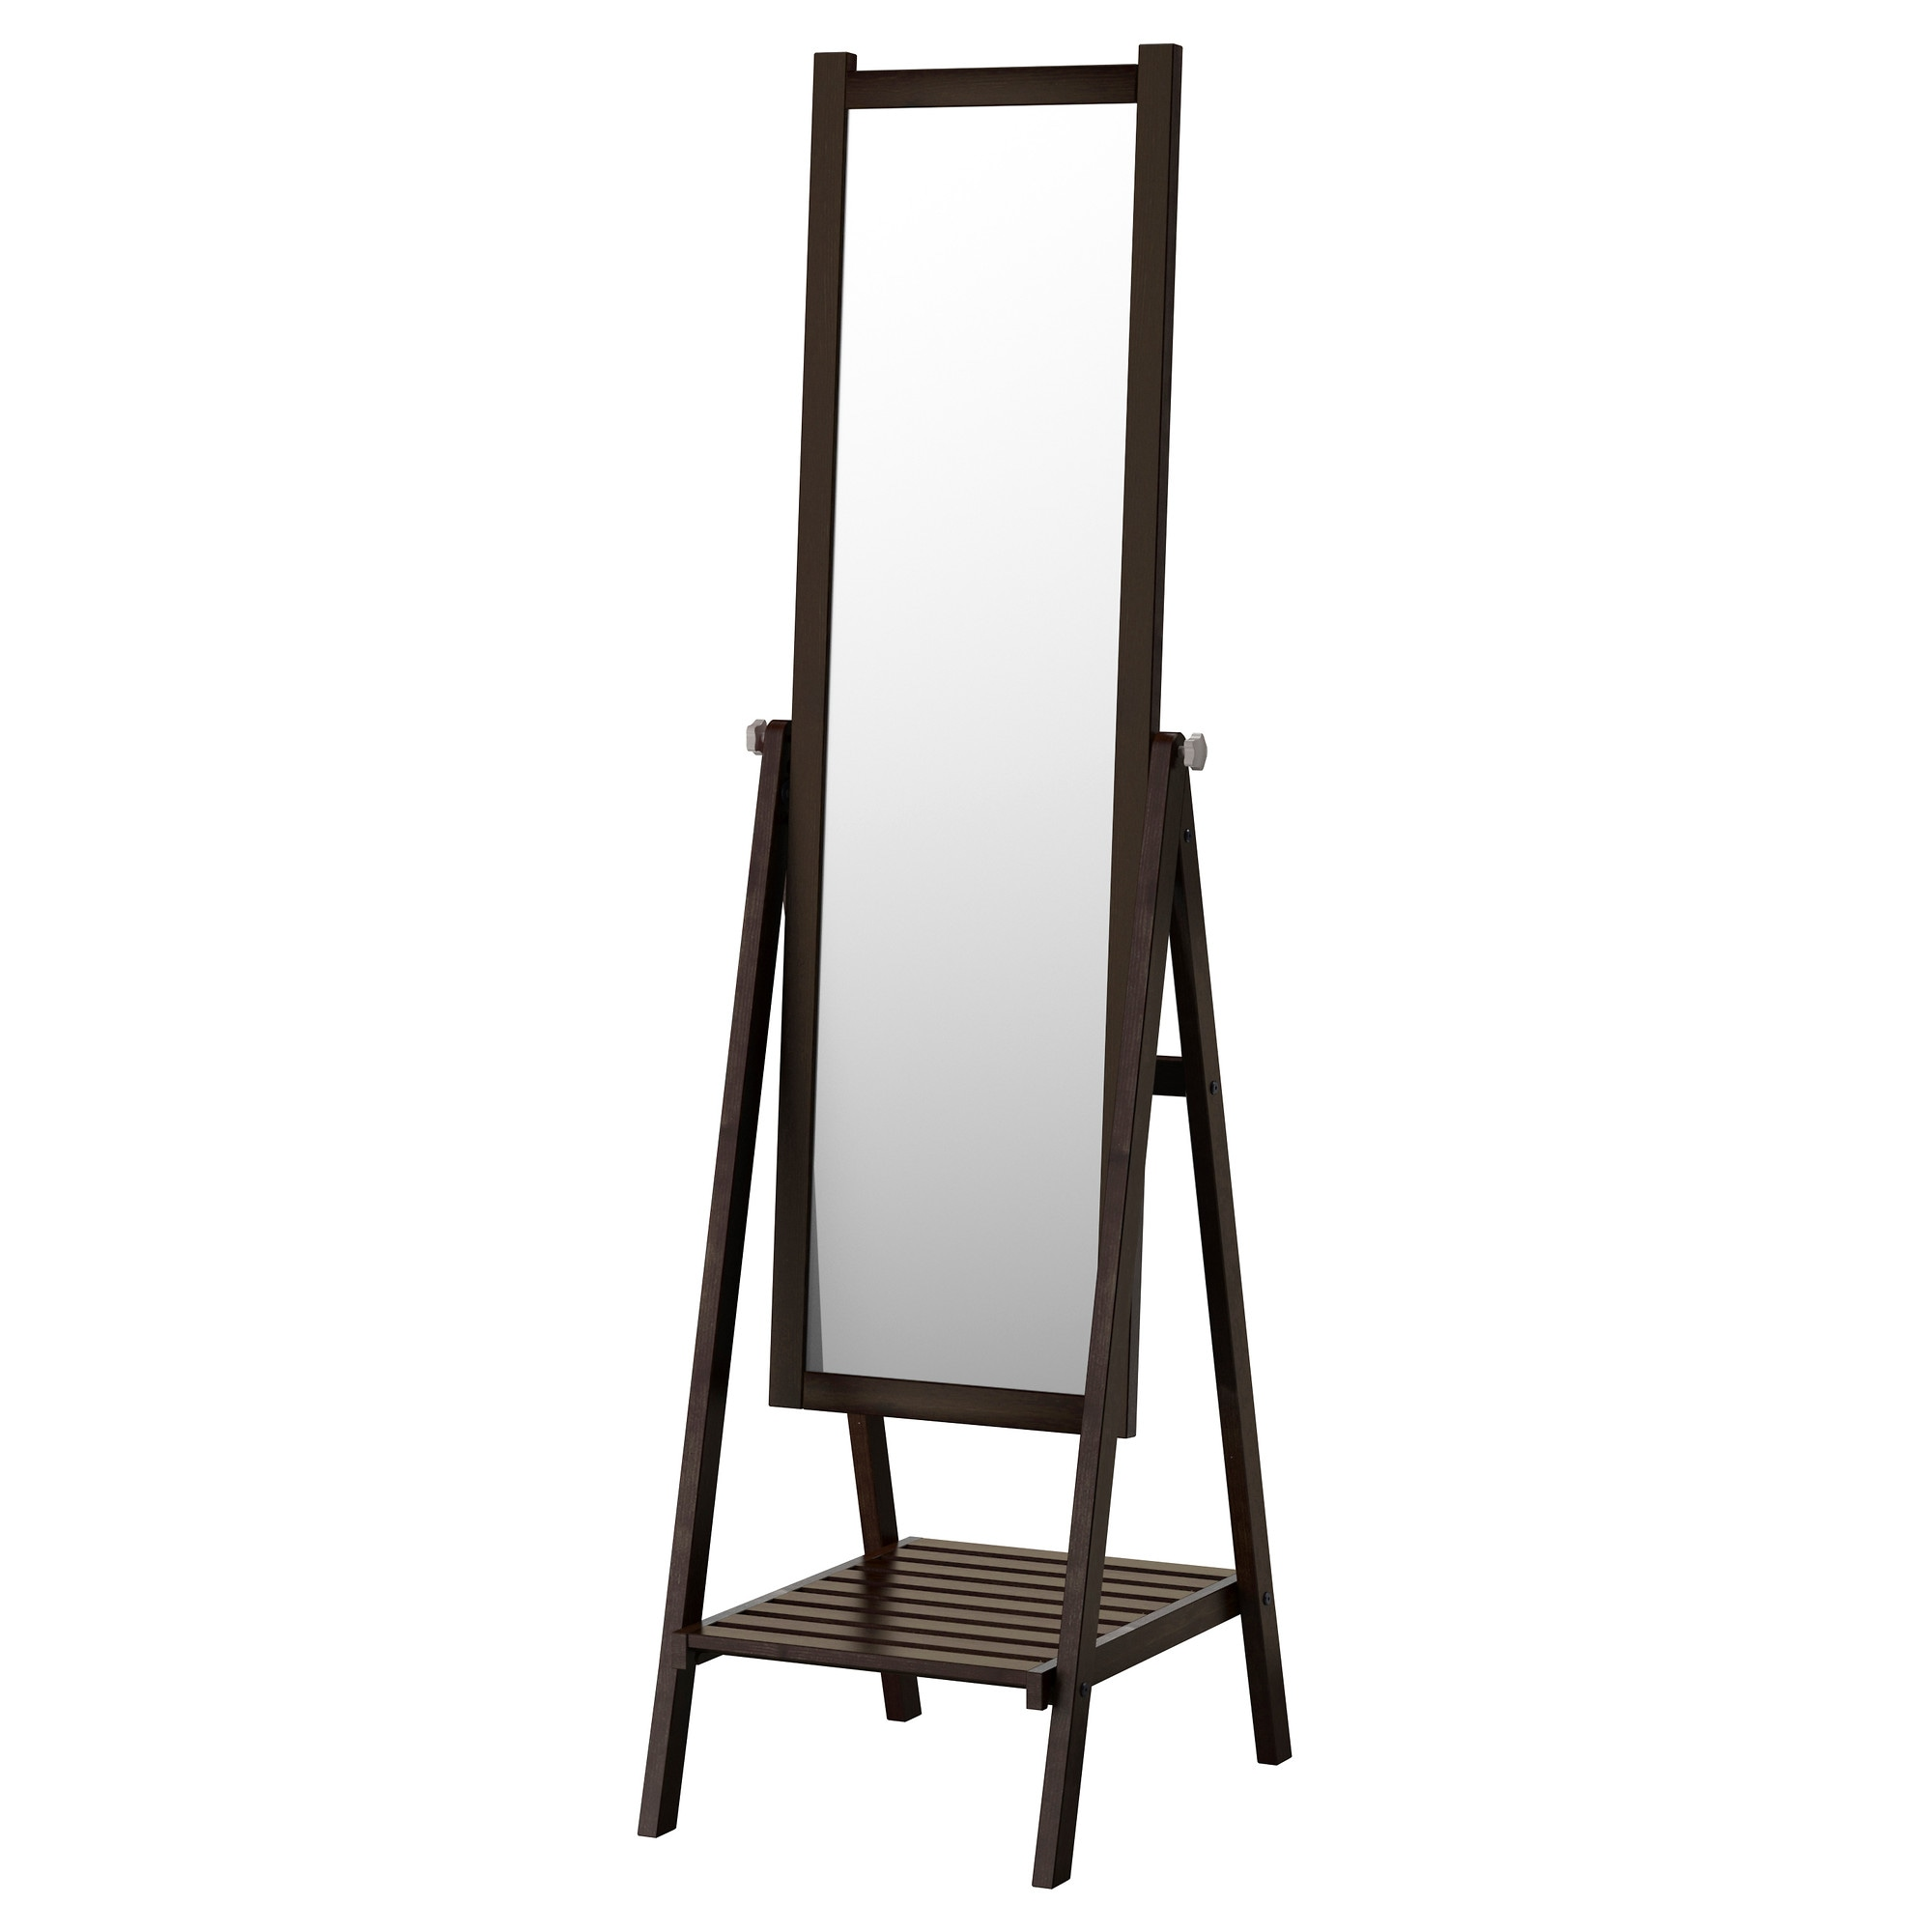 Stand Alone Mirror Bedroom Mirrors Floor Table Wall Mirrors Ikea